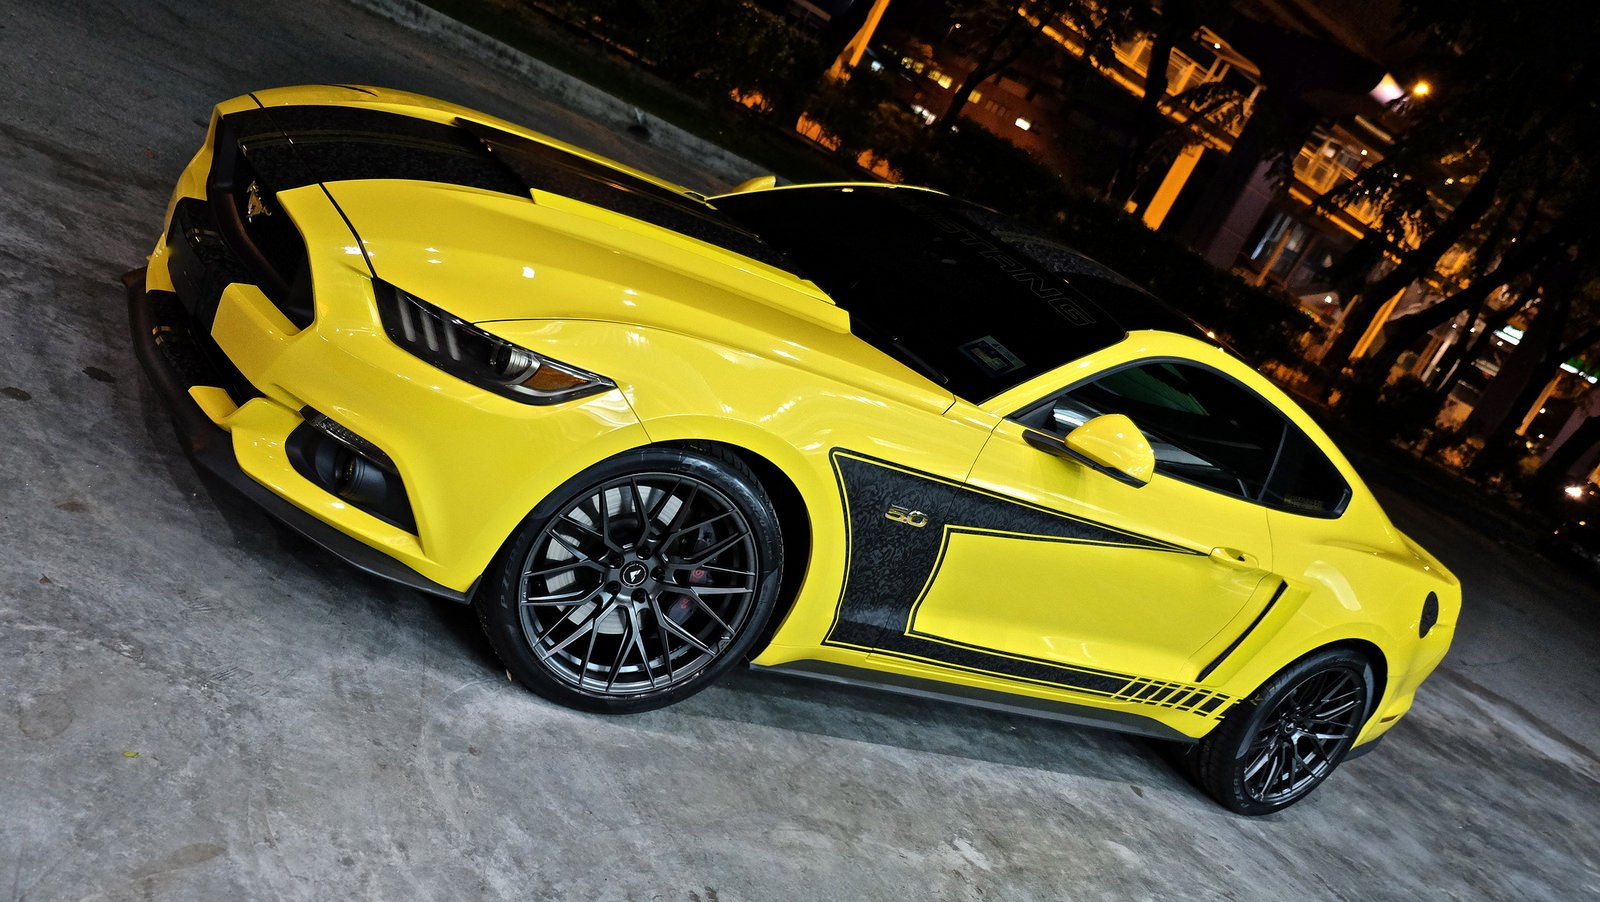 Custom Vented Hood on Yellow Ford Mustang 5.0 - Photo by Vorsteiner